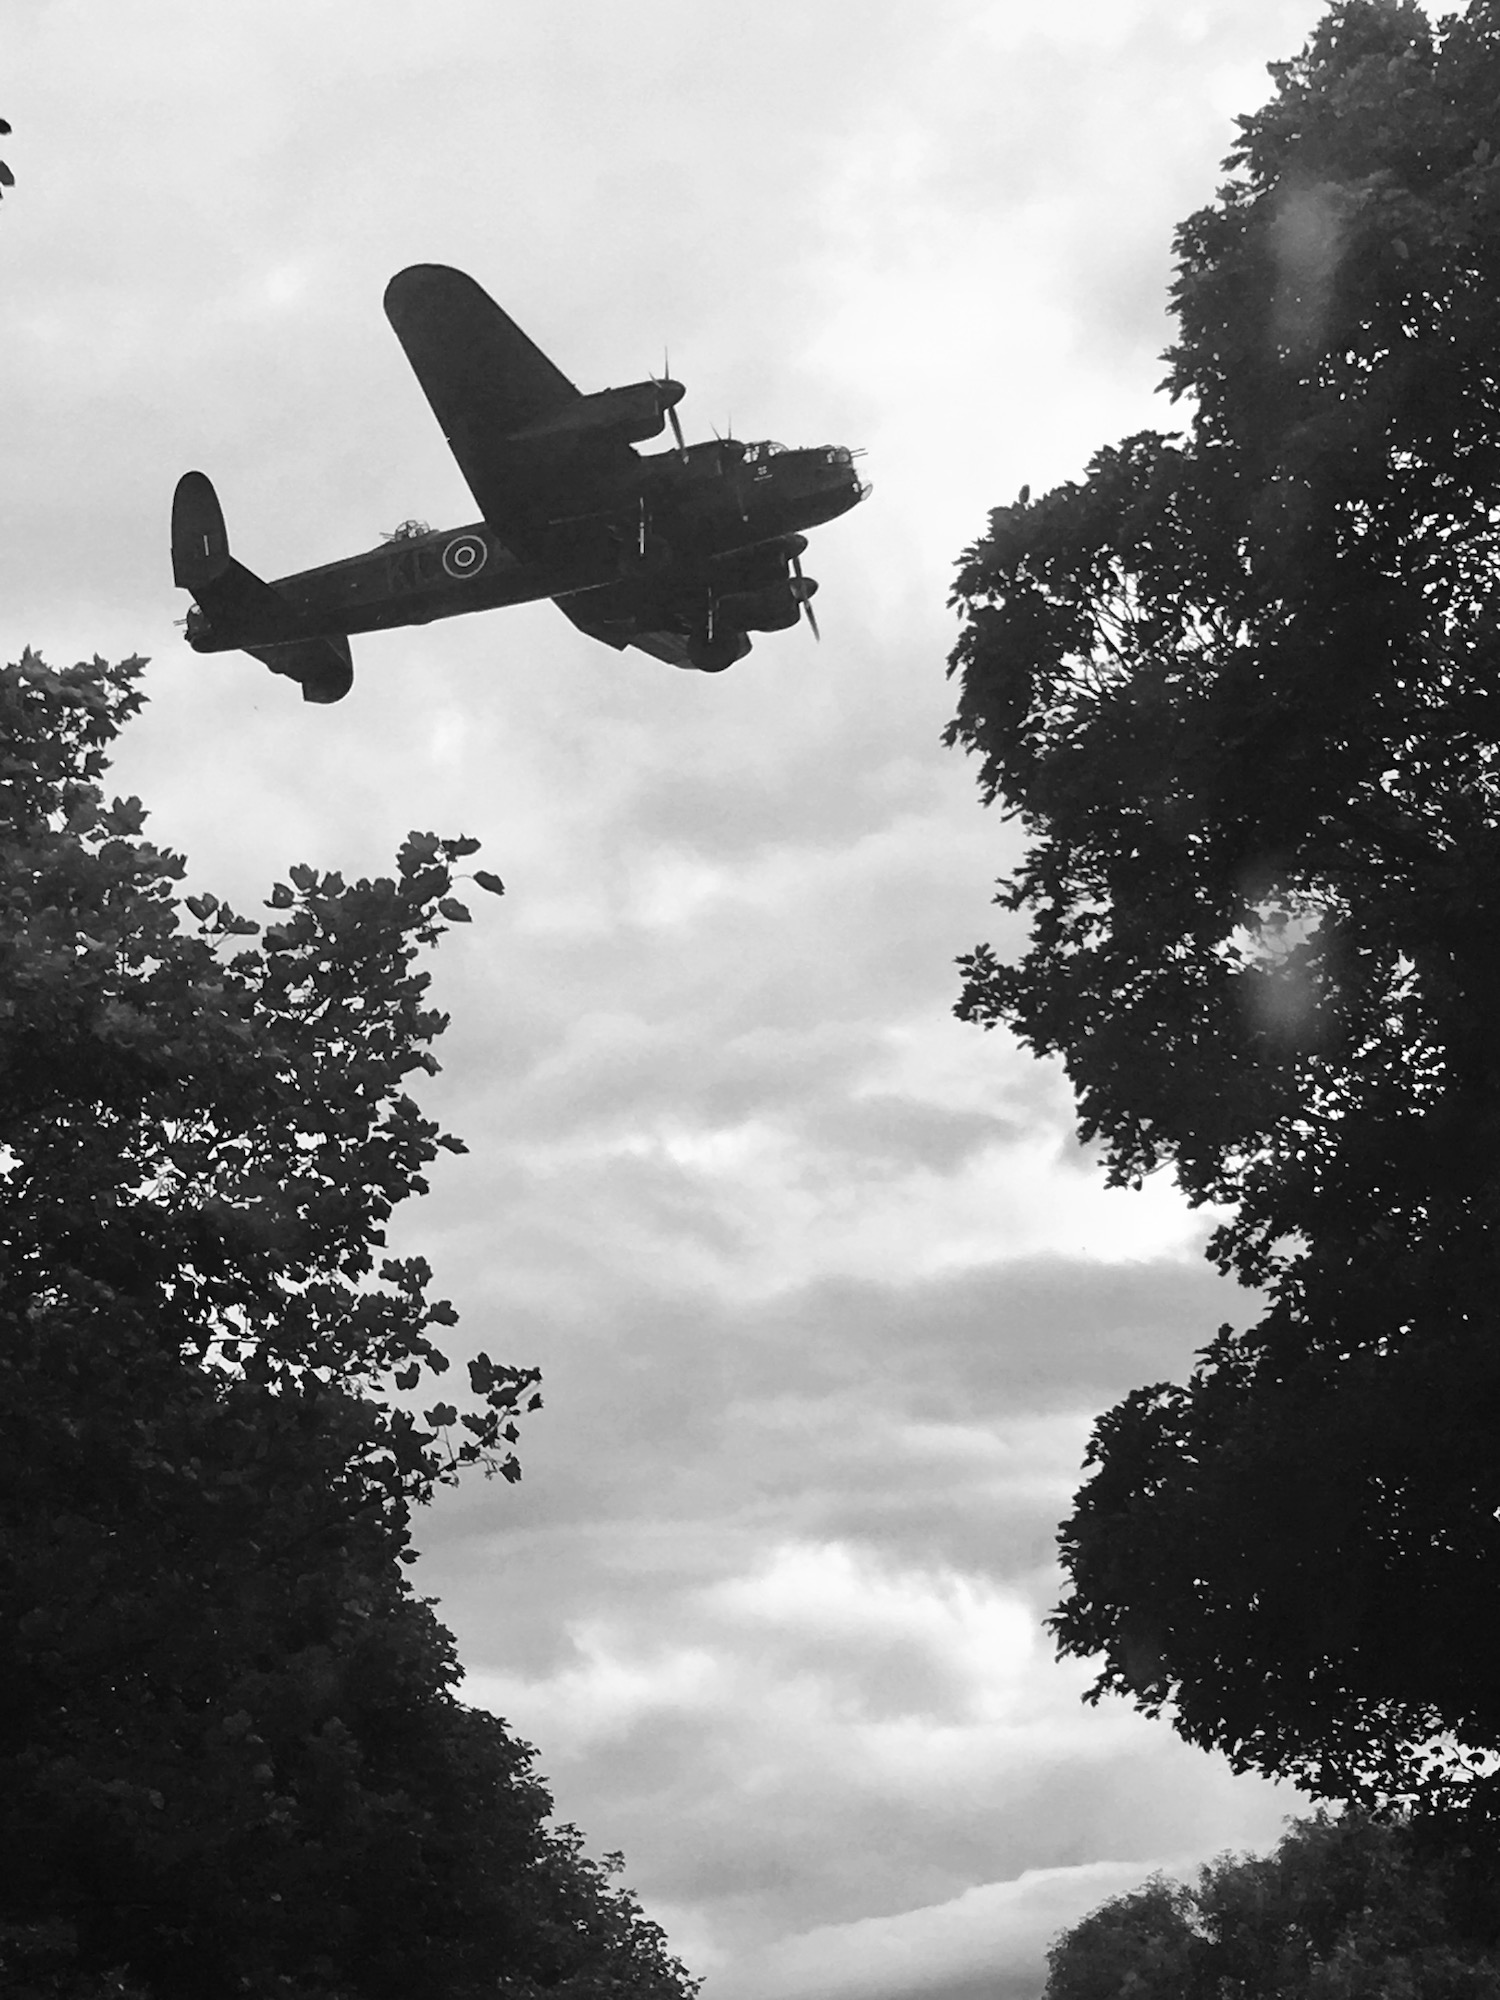 Photography becomes too easy - Lancaster bomber lands